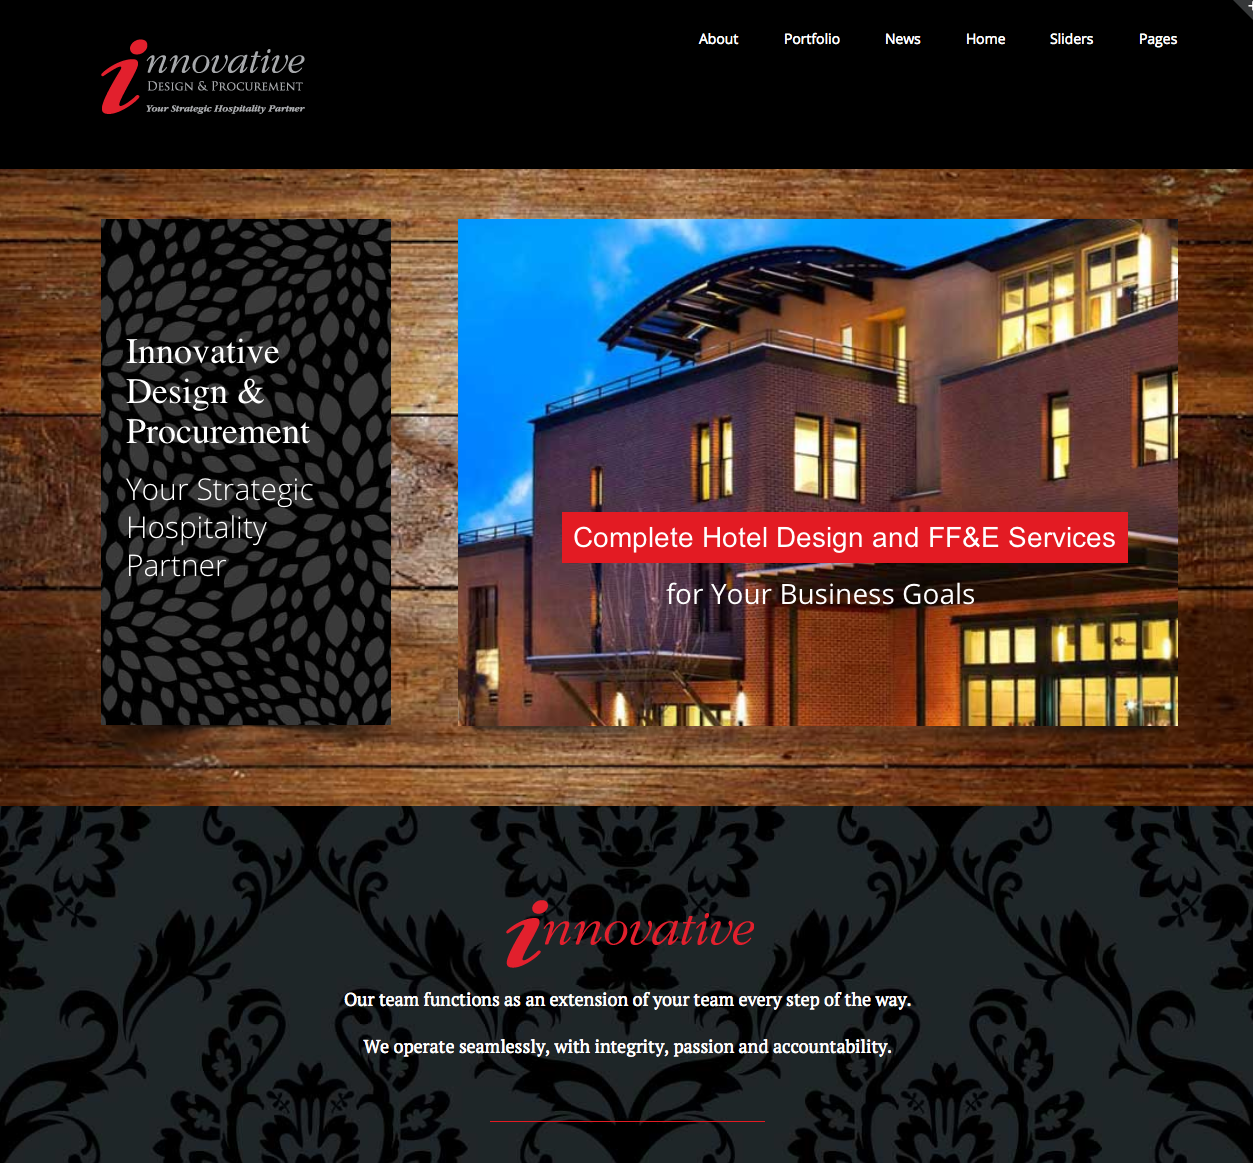 innovative-design-new-website